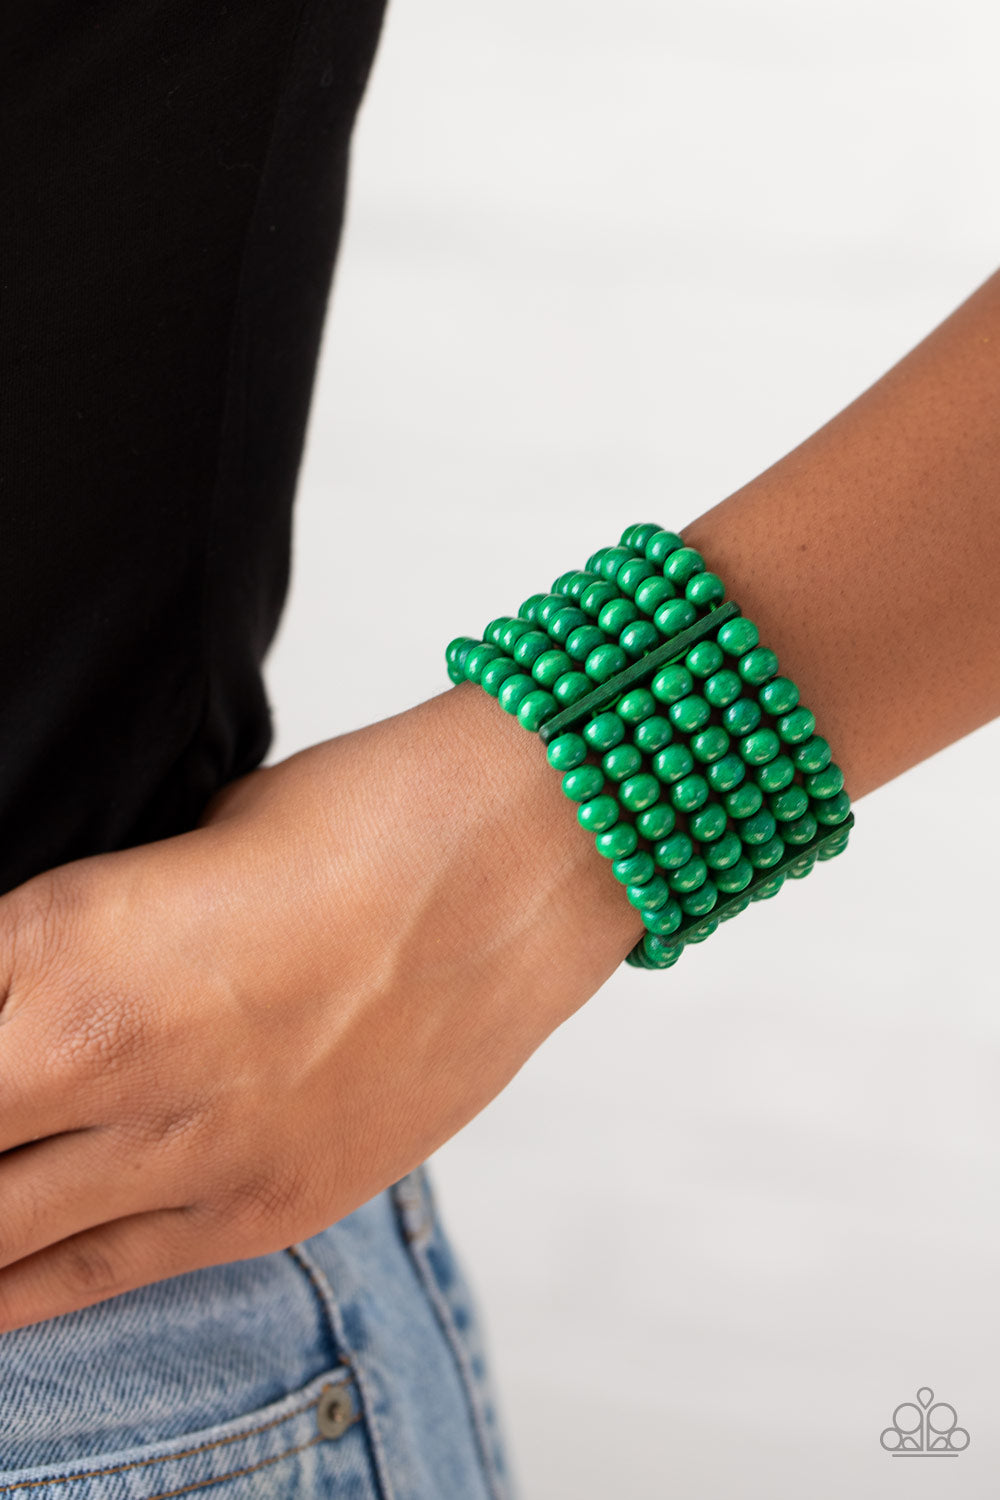 Paparazzi Jewelry & Accessories - Tanning in Tanzania - Green Bracelet. Bling By Titia Boutique